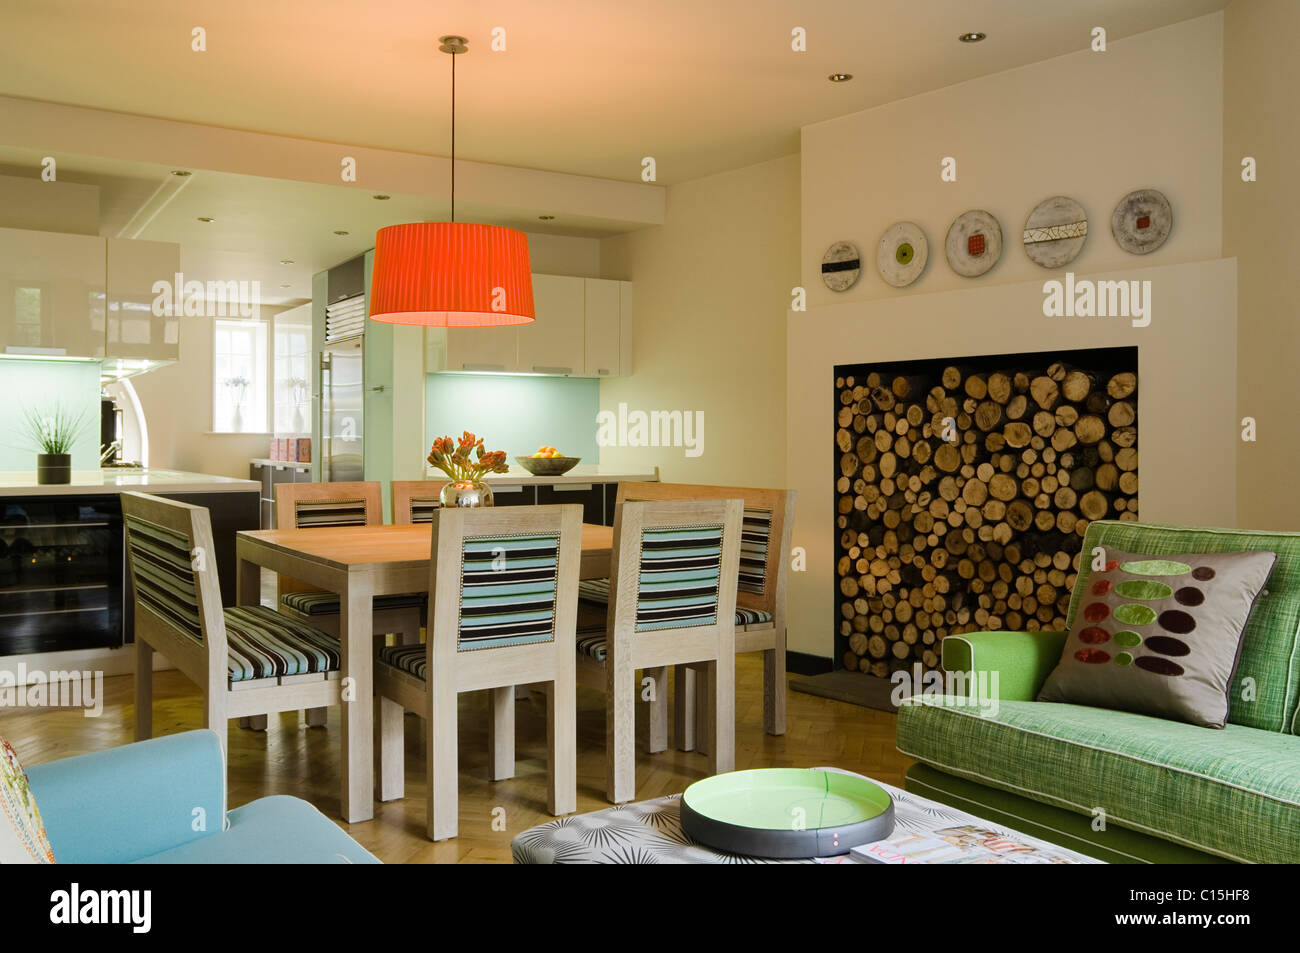 Large orange lampshade above dining table in open plan kitchen room large orange lampshade above dining table in open plan kitchen room with firewood aloadofball